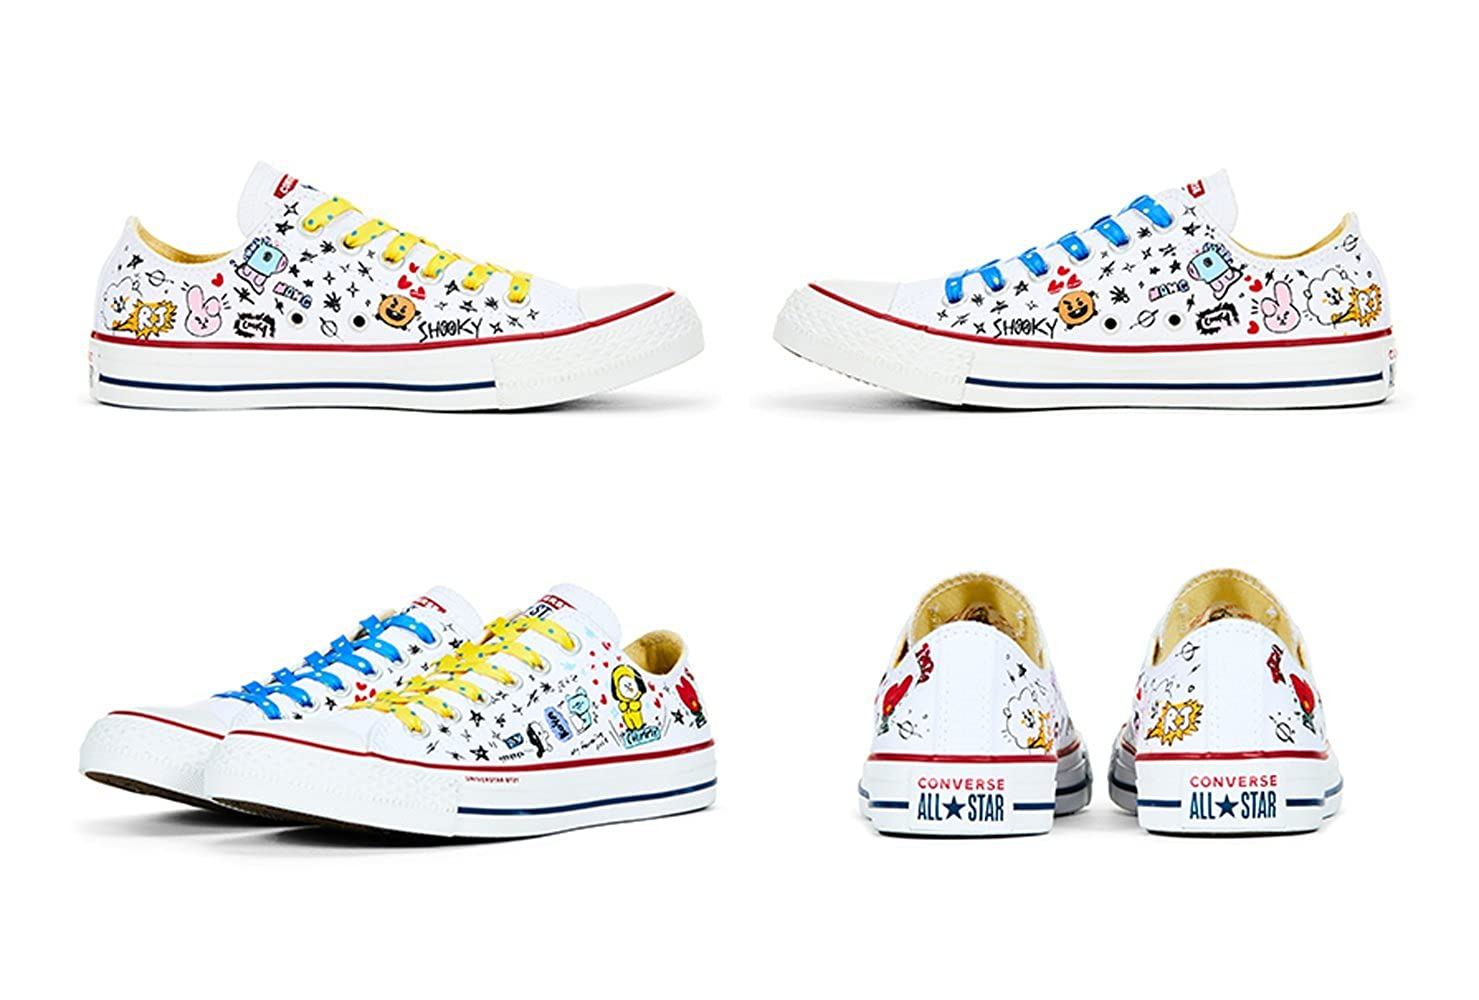 f0c2bedcb97f91 Amazon.com  BT21 x Converse Collarboration Chuck Taylor All Star Low White  (Limited)  Shoes